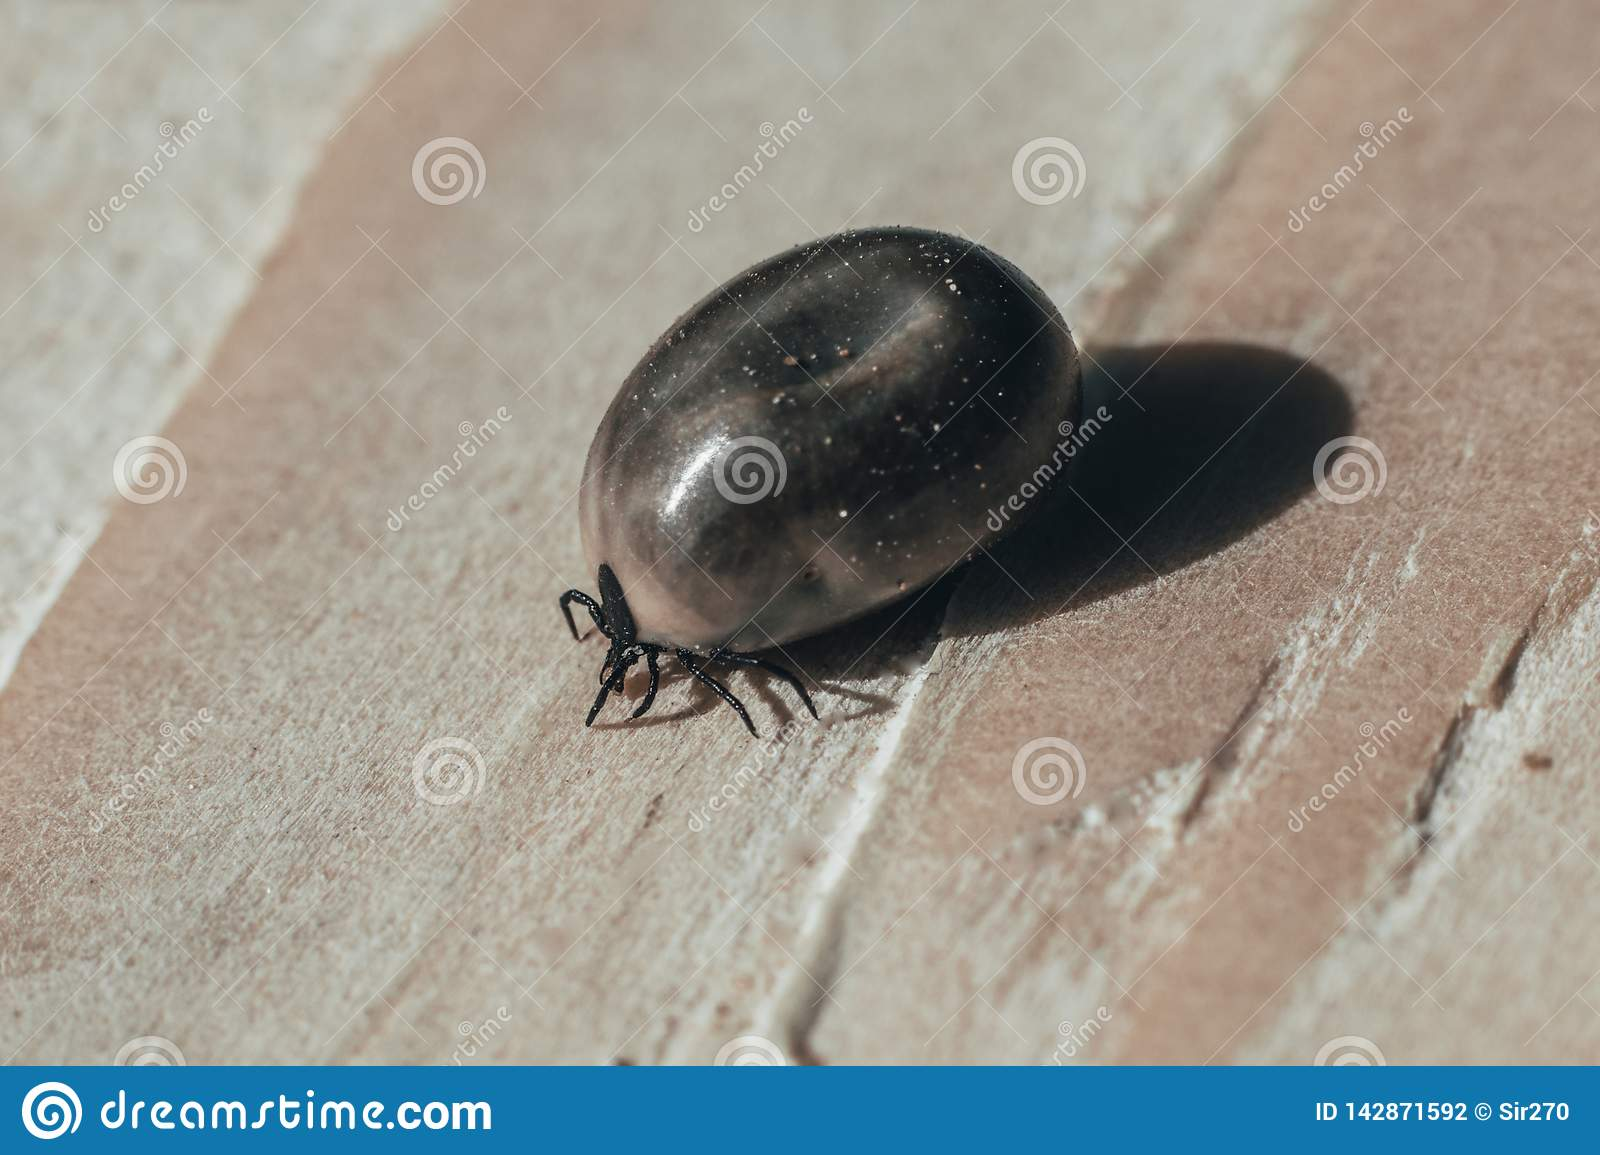 close-up. Dangerous parasite and tick carrier, on wooden background. he drank a lot of blood